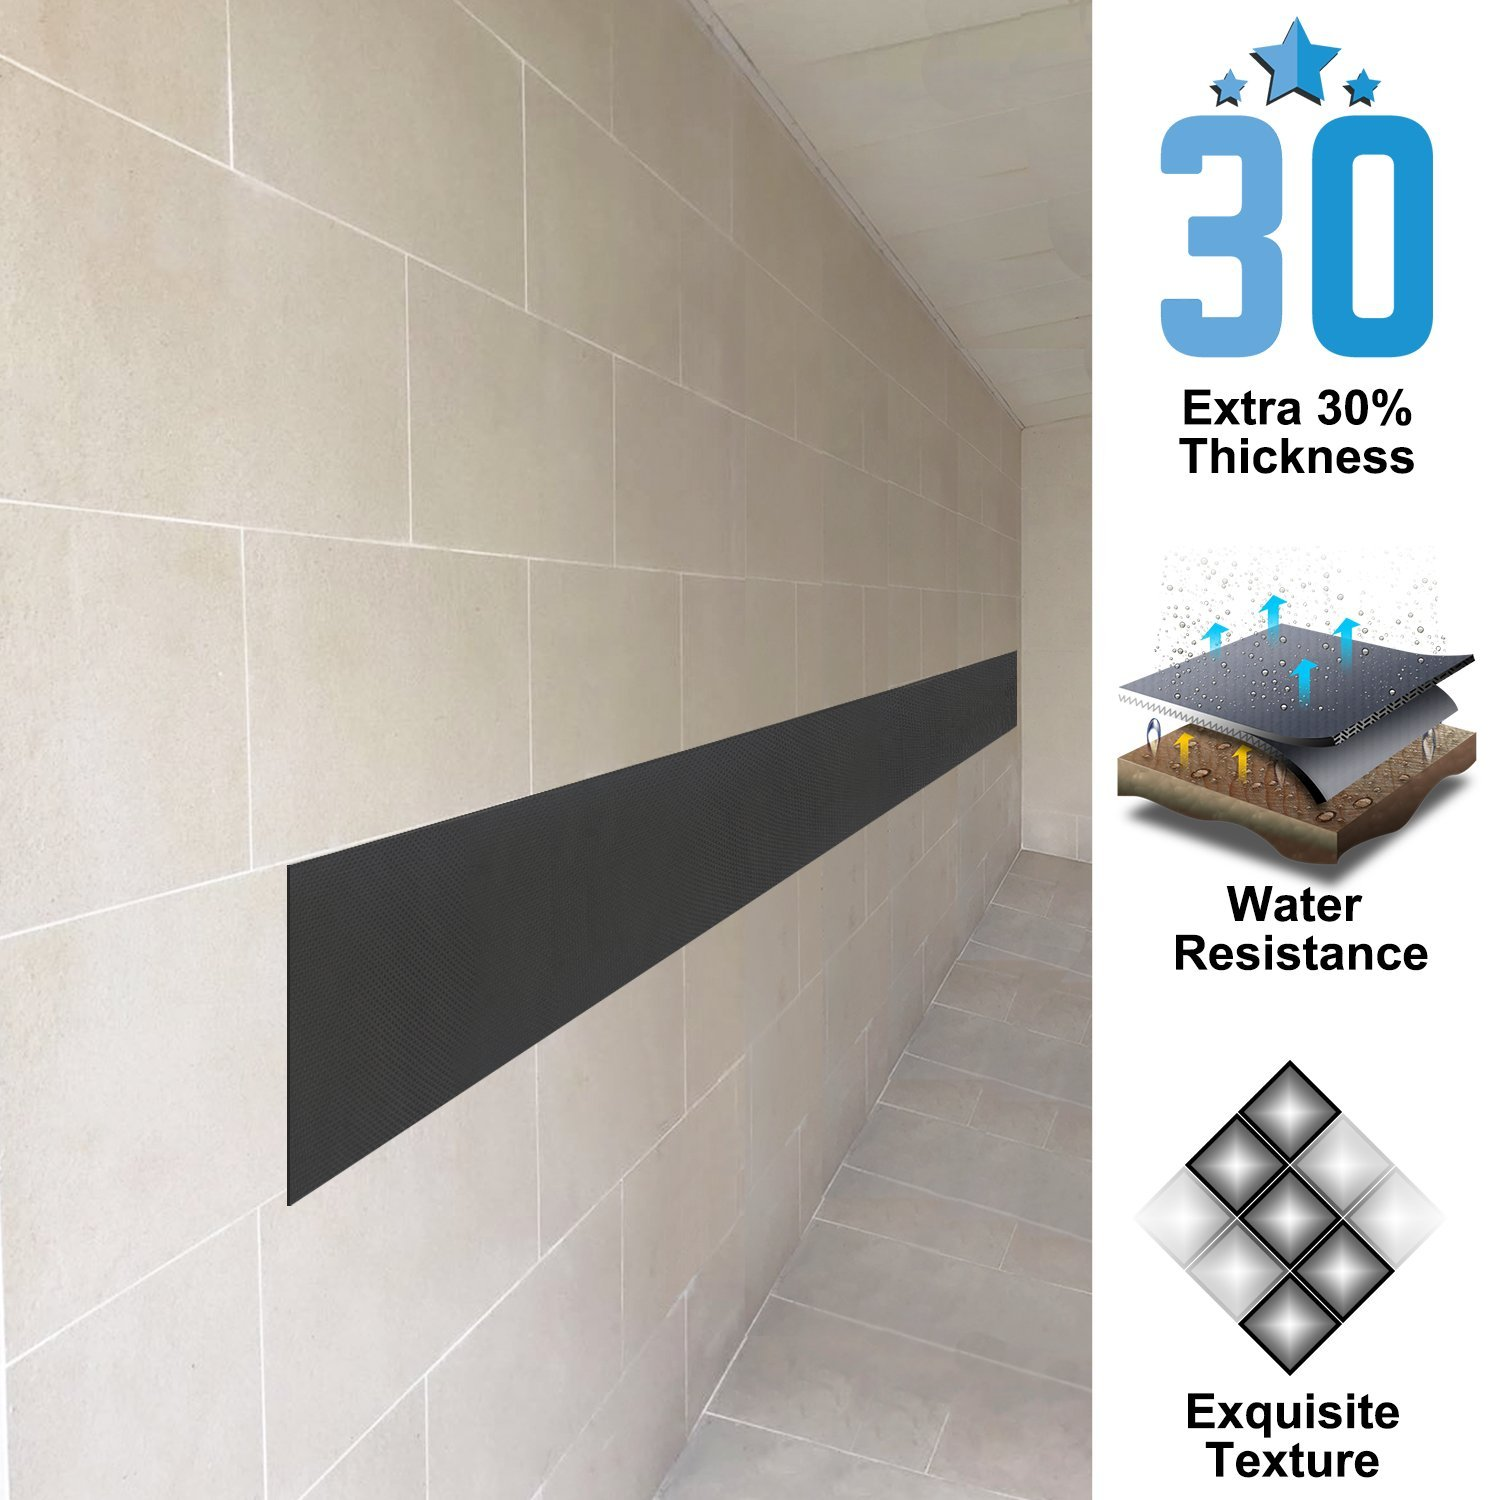 Amazon ampulla super thick water resistance garage wall amazon ampulla super thick water resistance garage wall protector designed in germany 2 pieces in one roll 16 thickness automotive rubansaba